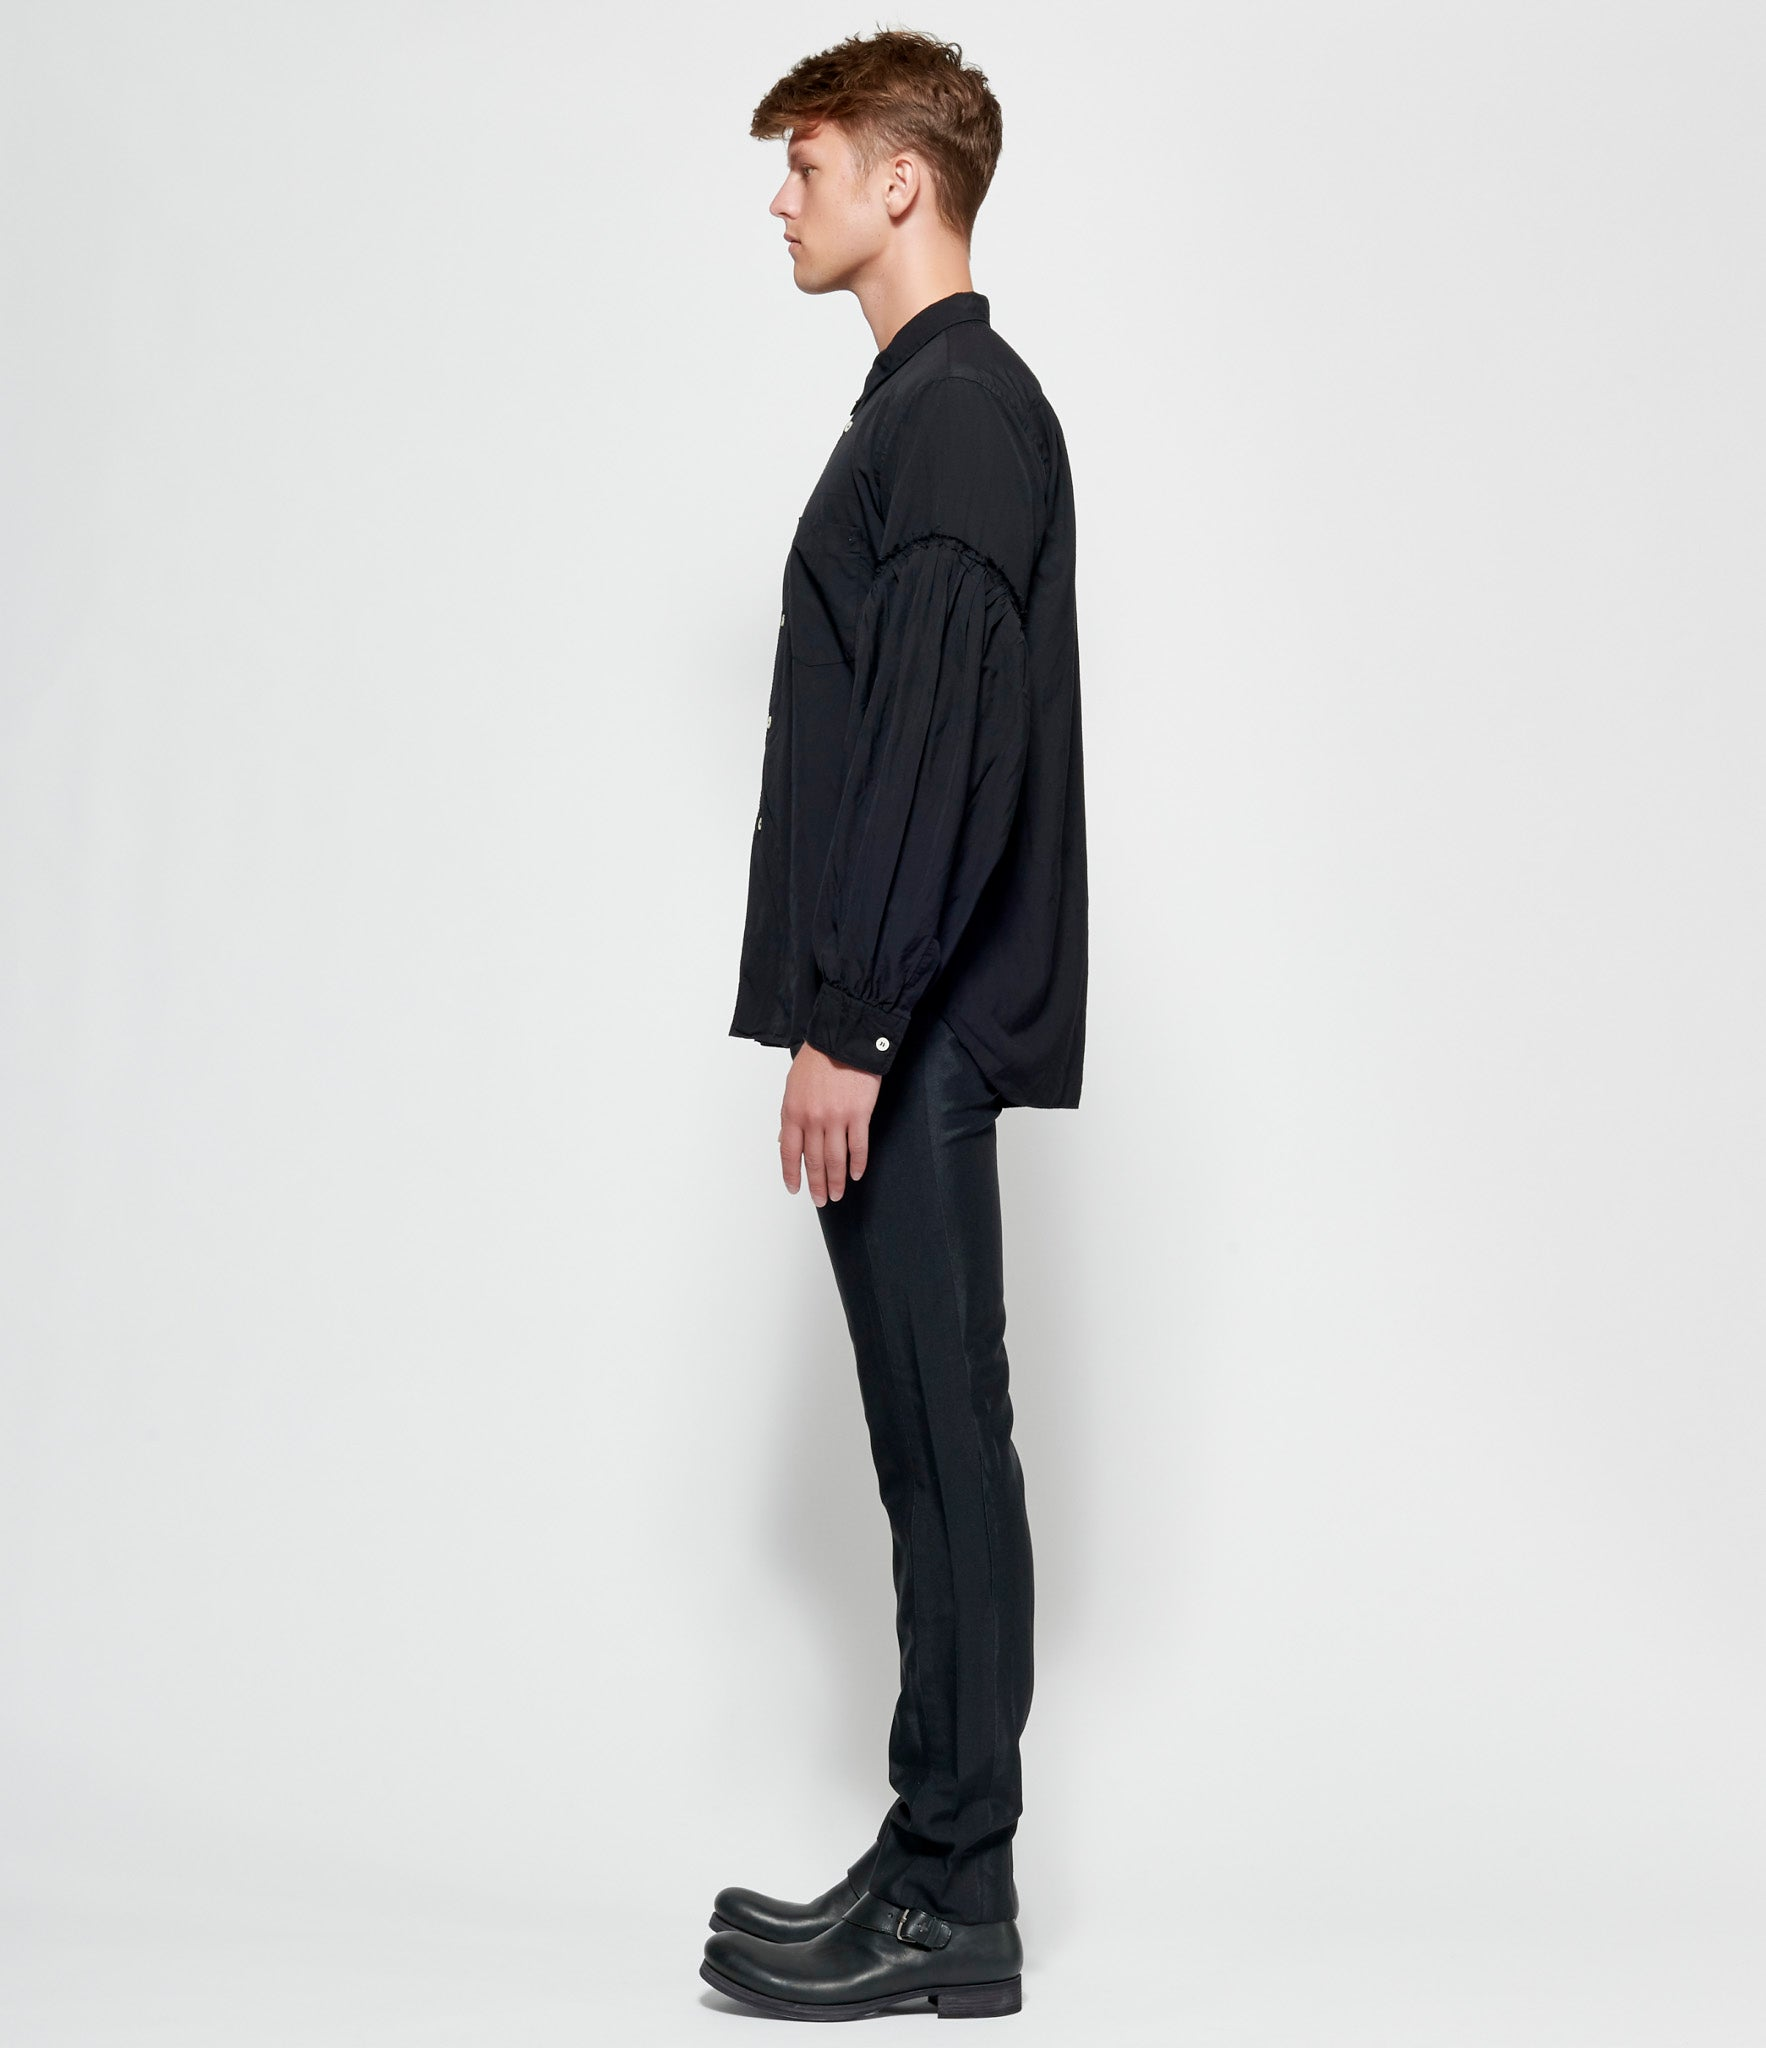 Comme Des Garcons Homme Plus Garment Treated Polyester Satin x Polyester Double Cloth Twill Pants